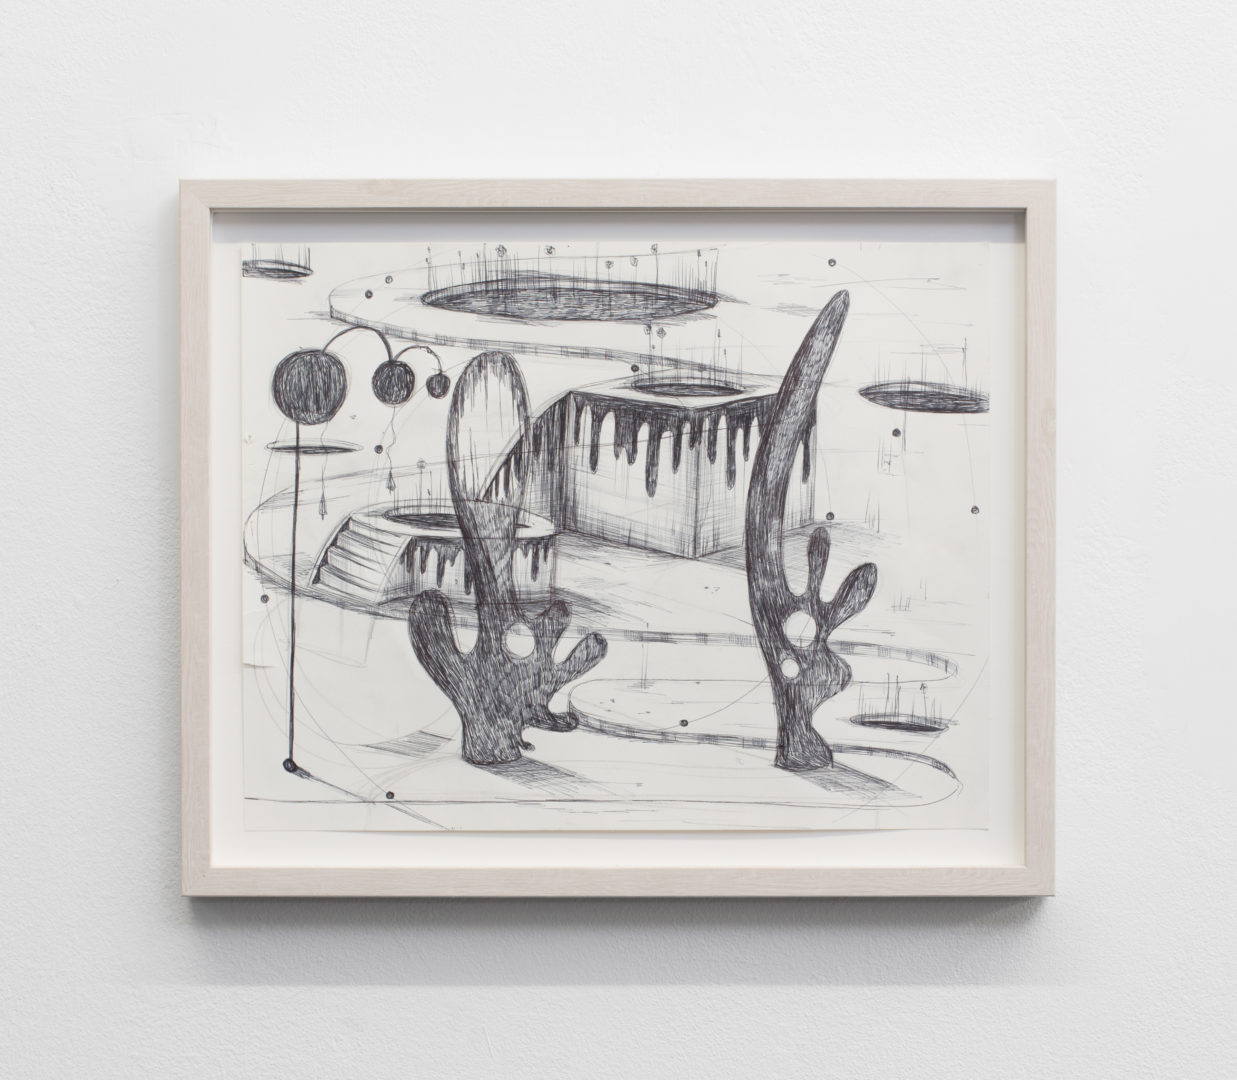 """Exhibition View Veit Laurent Kurz """"Drawing I (AOA Series), 2018"""" at Weiss Falk / Courtesy: Weiss Falk and the artist"""